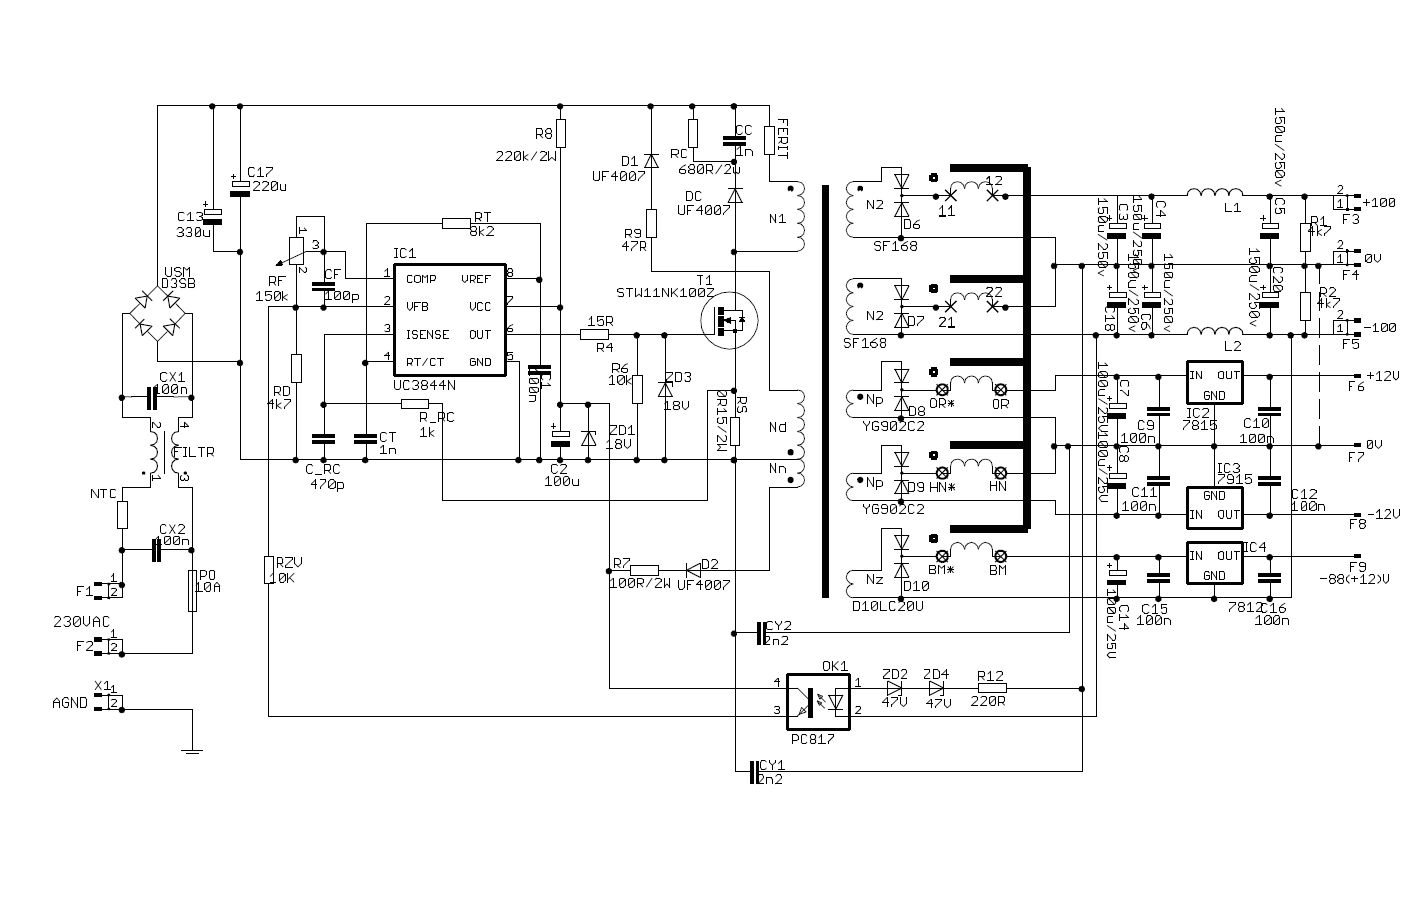 2x100v 500w audio amplifier smps power supply switchmode uc3844 2x100v smps circuit schematic 120x120 [ 1418 x 921 Pixel ]